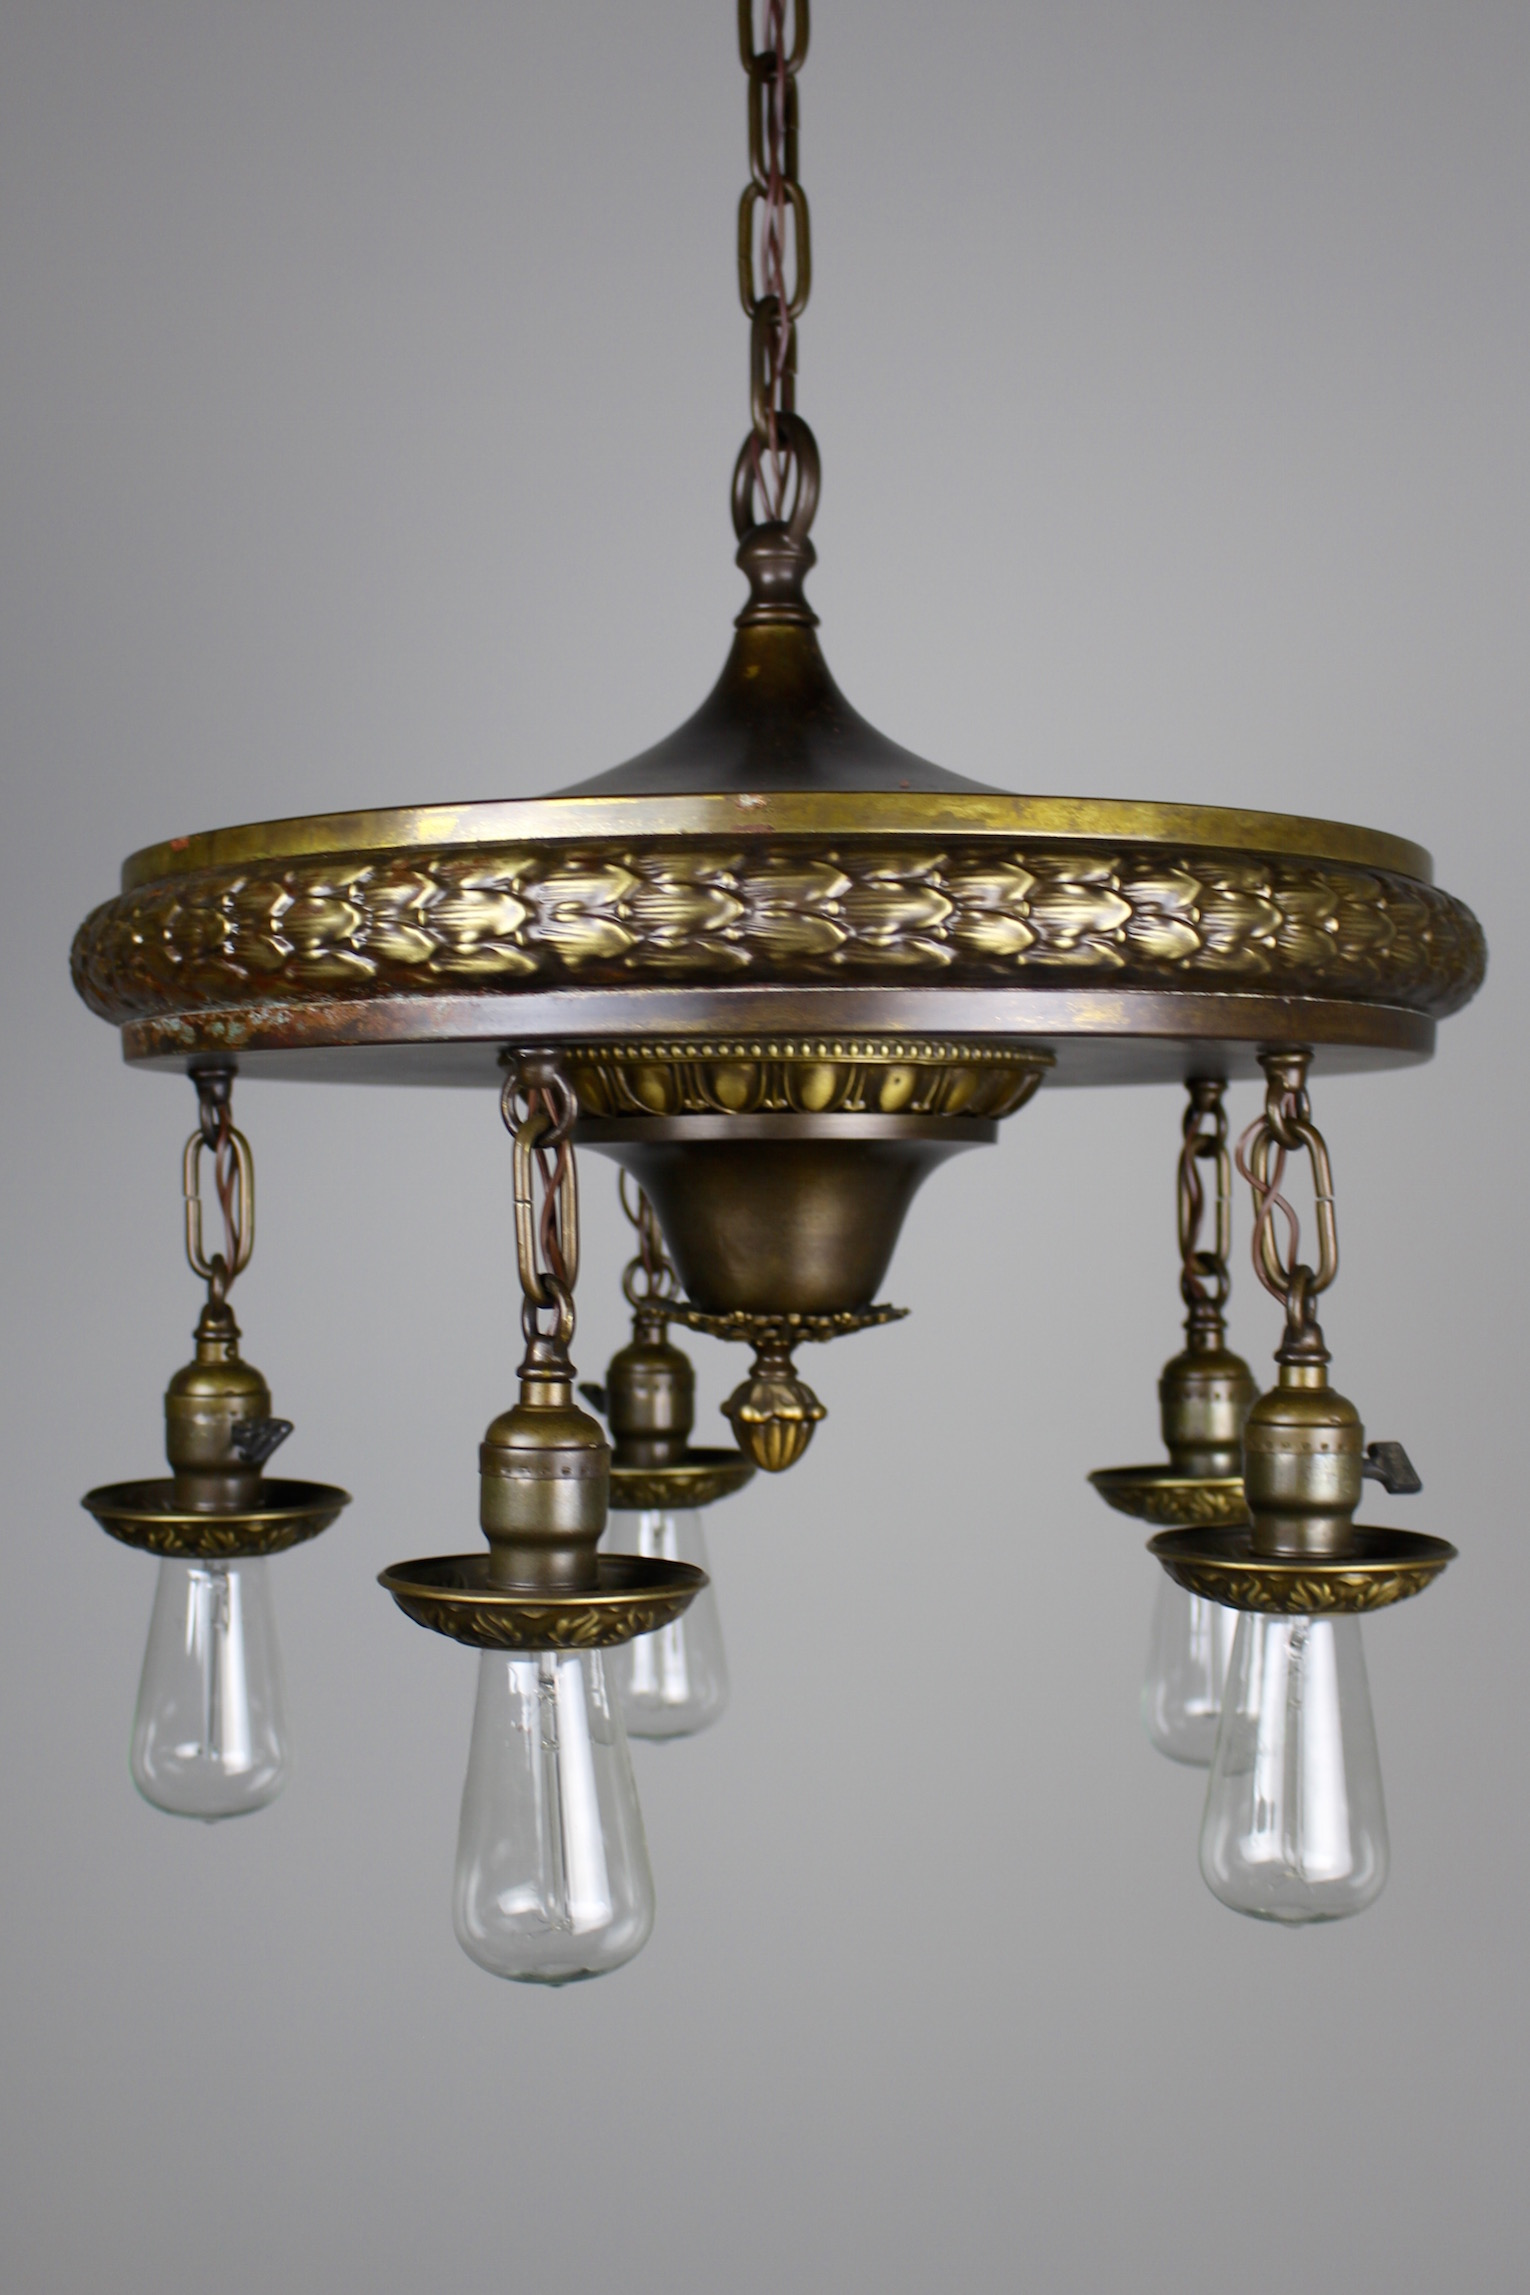 see more antique ceiling lights antique lighting